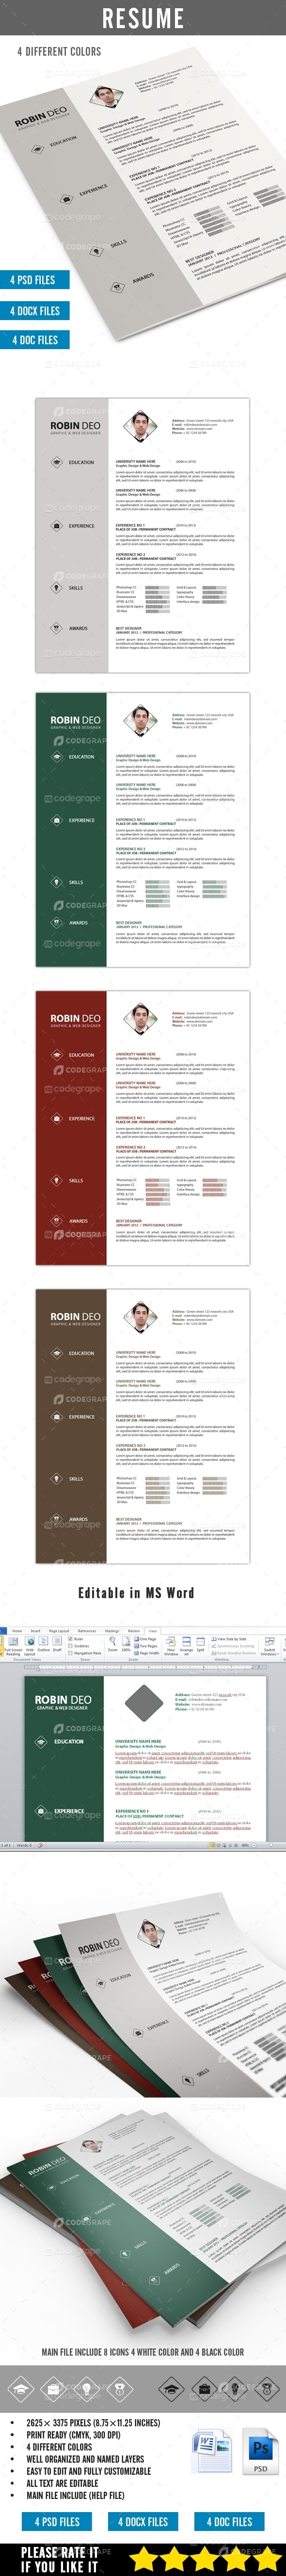 Clean Resume PSD / MS Word